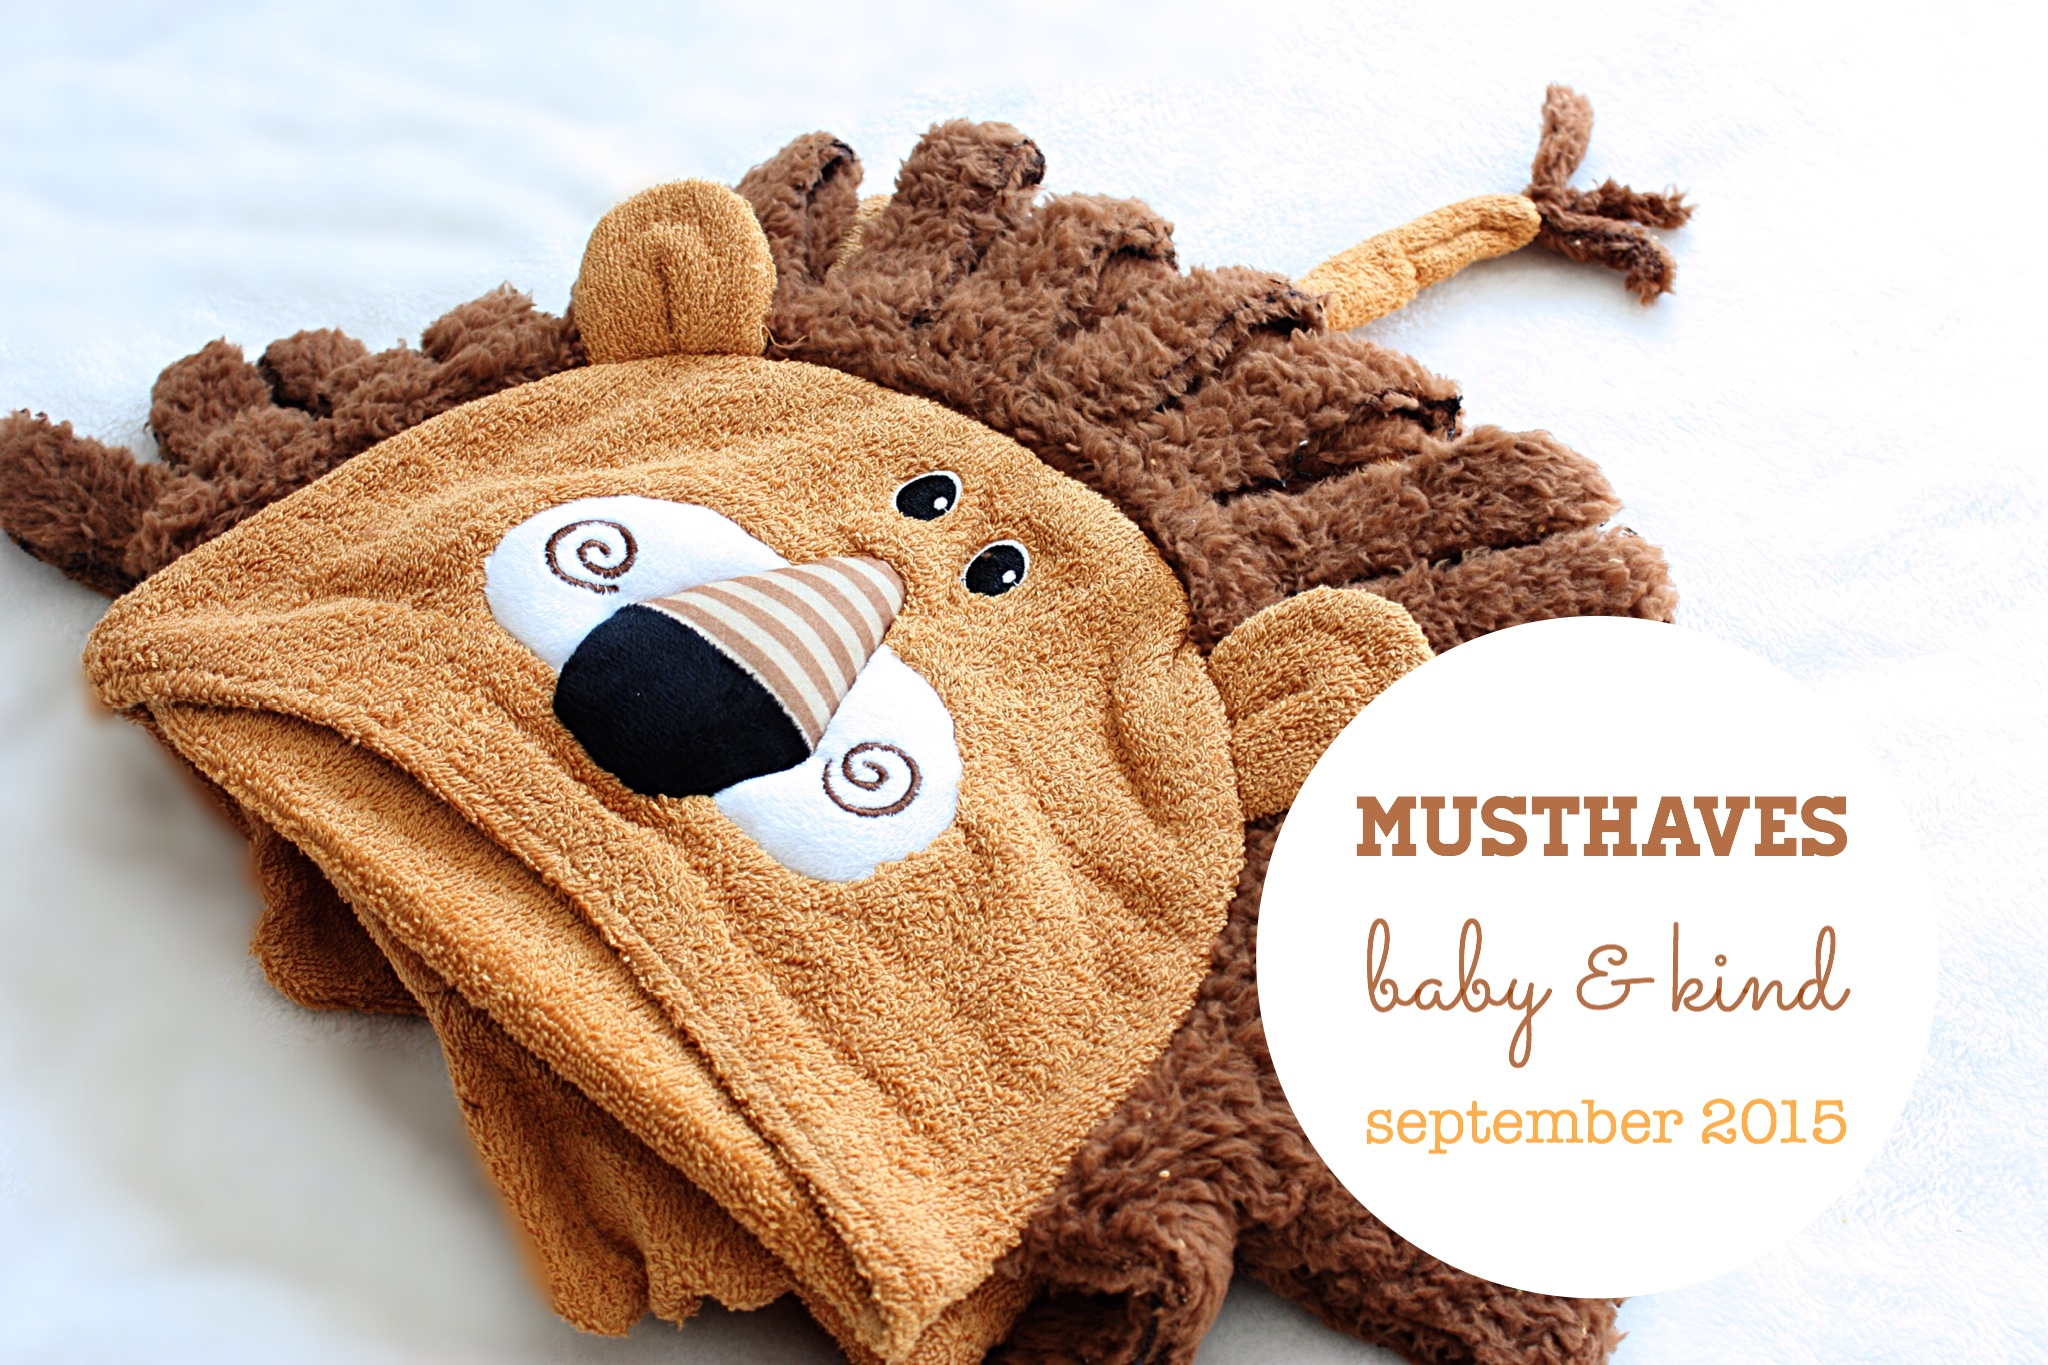 Musthaves baby en kind